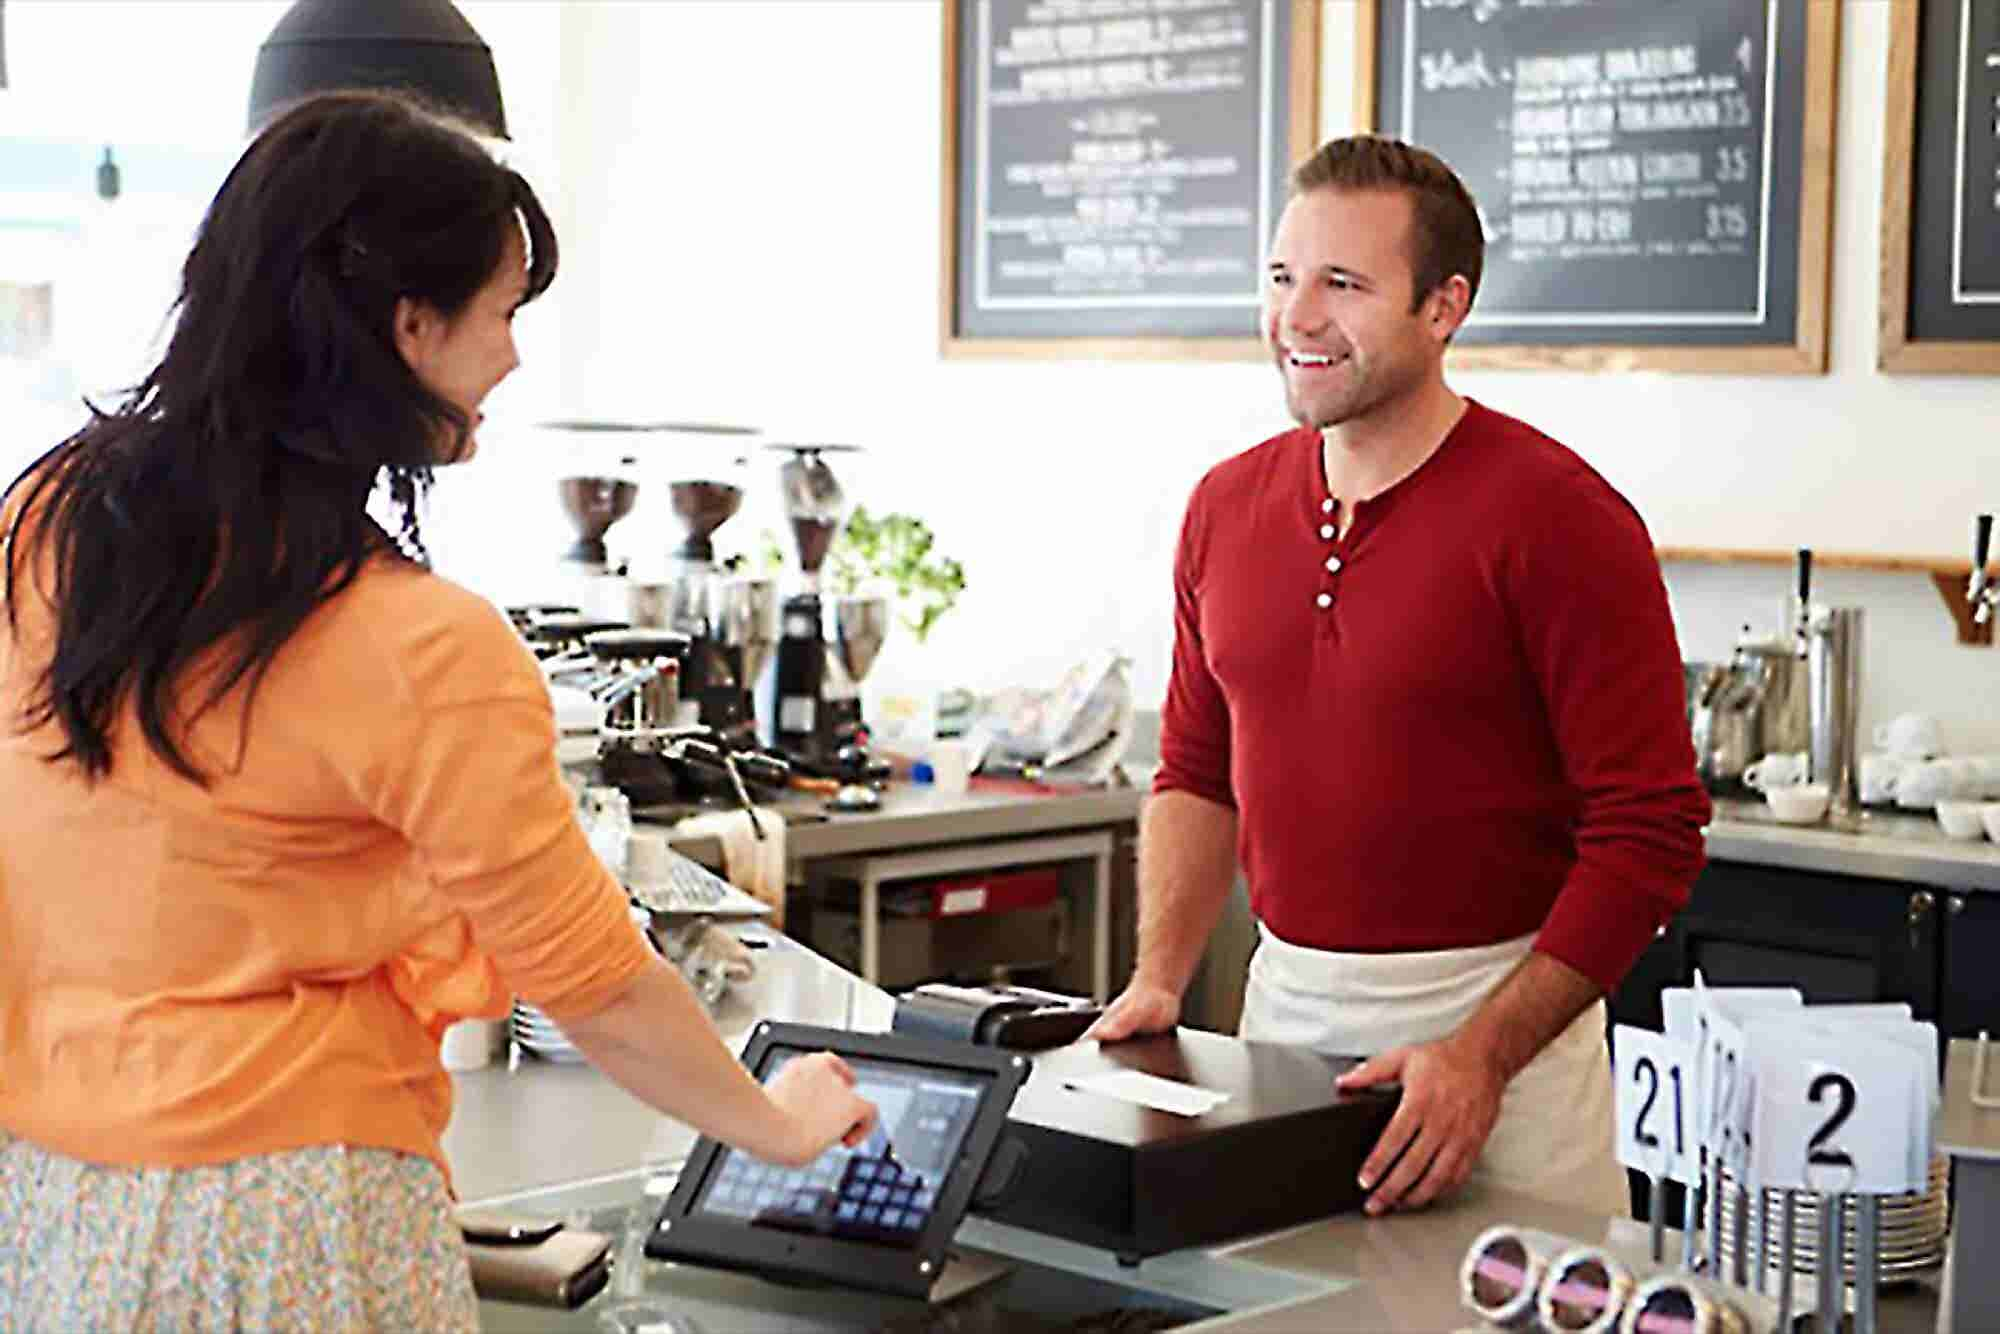 Know Thy Customer: 3 Tips for Success From a $285M Company